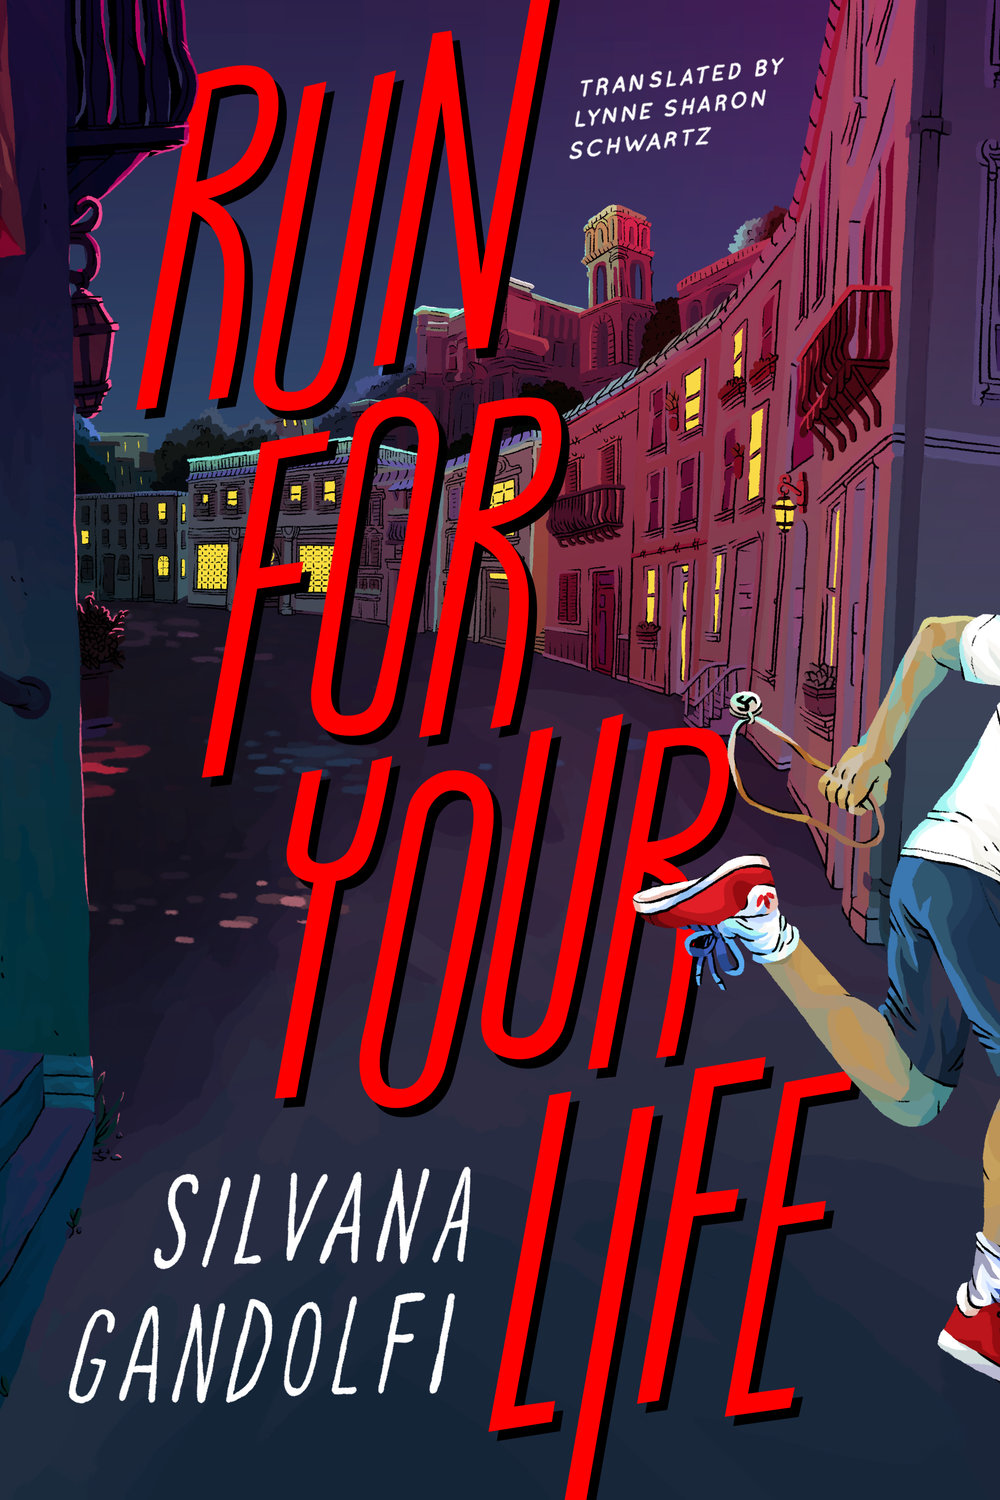 Run For Your Life , Silvana Gandolfi  For Restless Books. Illustration by Aimee Fleck, lettering by Aimee Fleck.